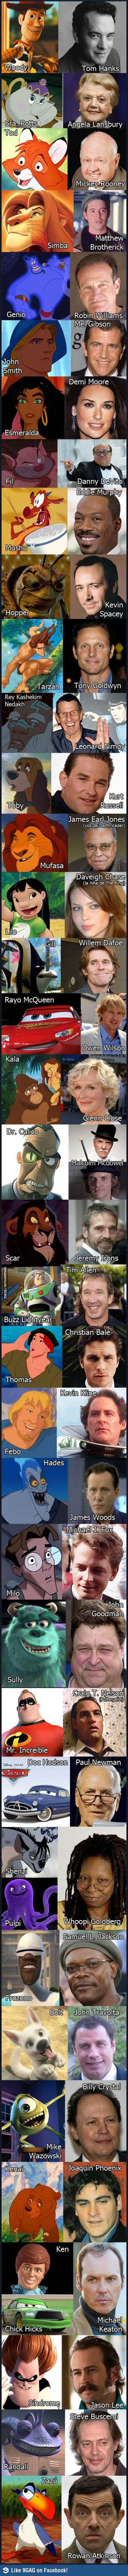 Who voiced who---Disney characters :D